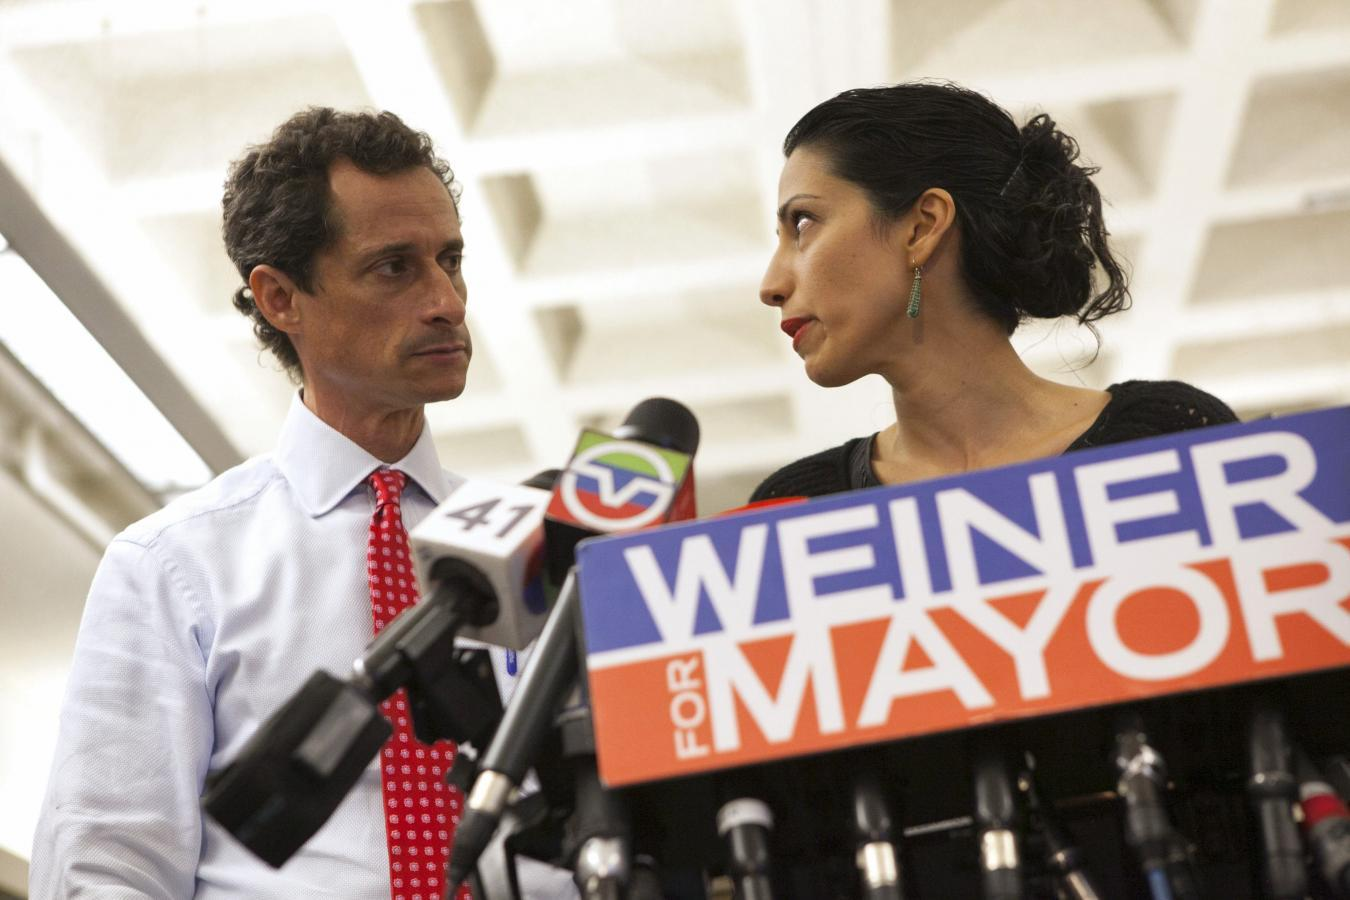 Anthony Weiner checks into sex addiction rehab clinic: Daily Mail